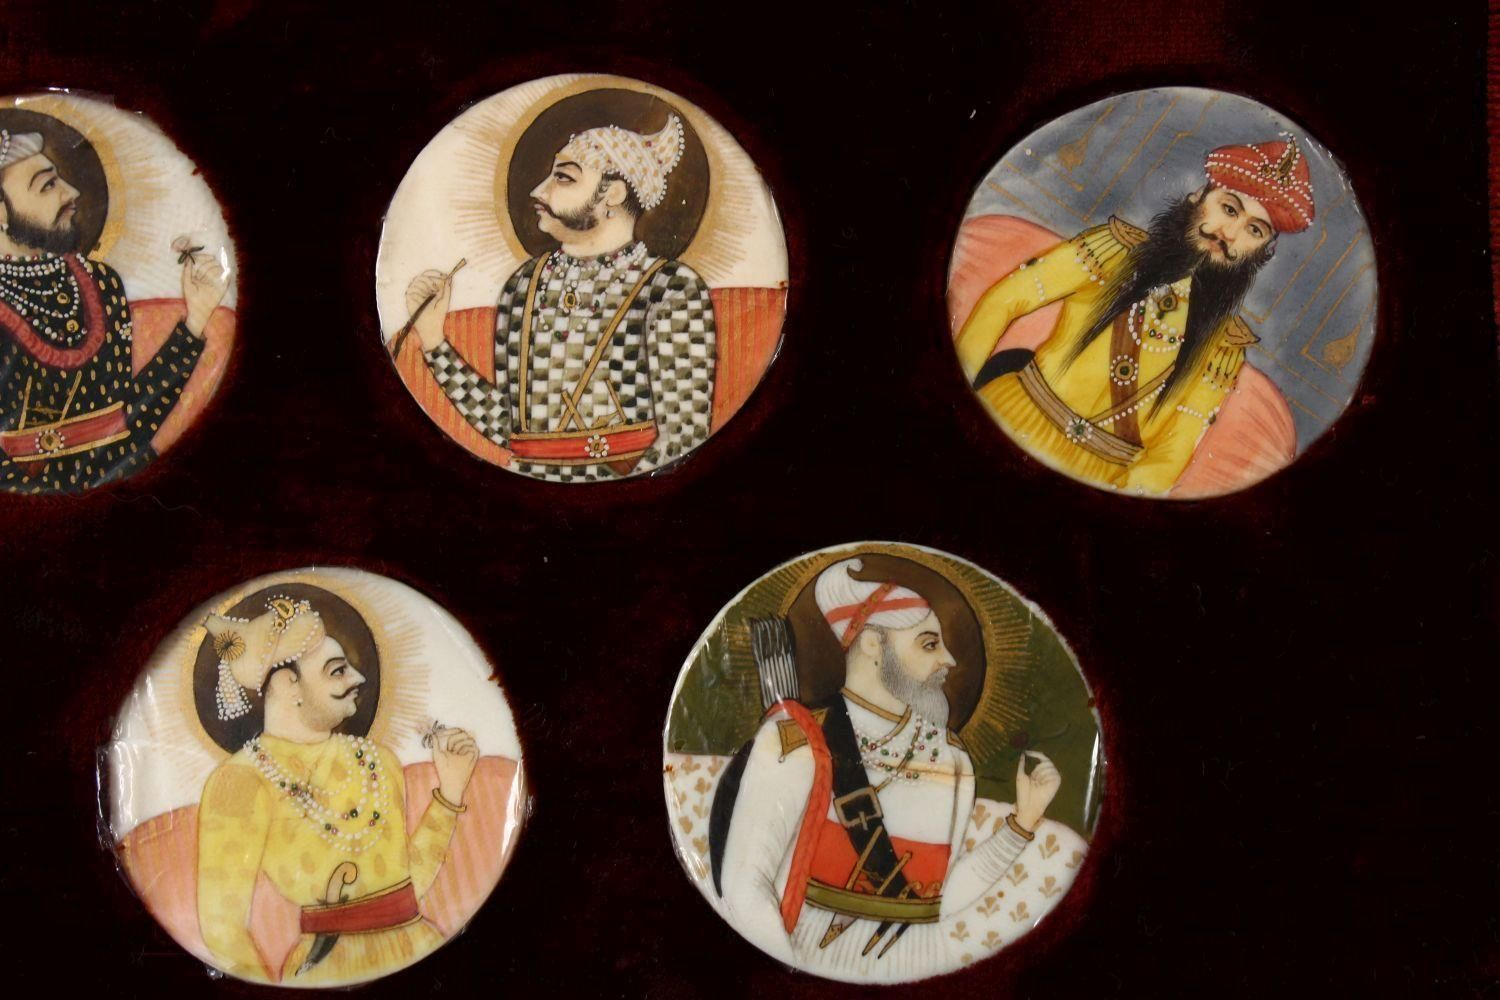 A BOXED SET OF THIRTEEN 18TH/19TH CENTURY PERSIAN CARVED & PAINTED IVORY MINIATURES, each of the - Image 9 of 10